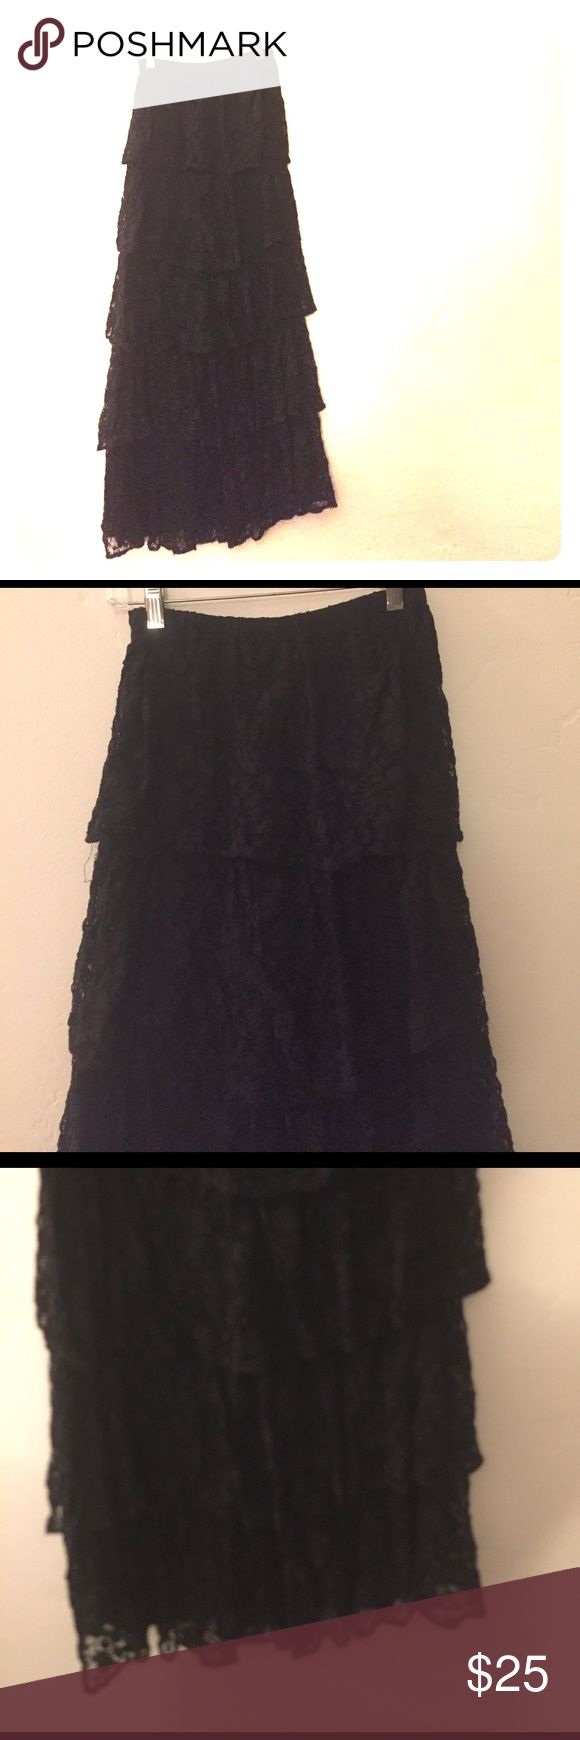 Lace maxi skirt Black lace skirt. 5 tiers of lace. Has lining. Super cute. Condition good. Urban Outfitters Skirts Maxi